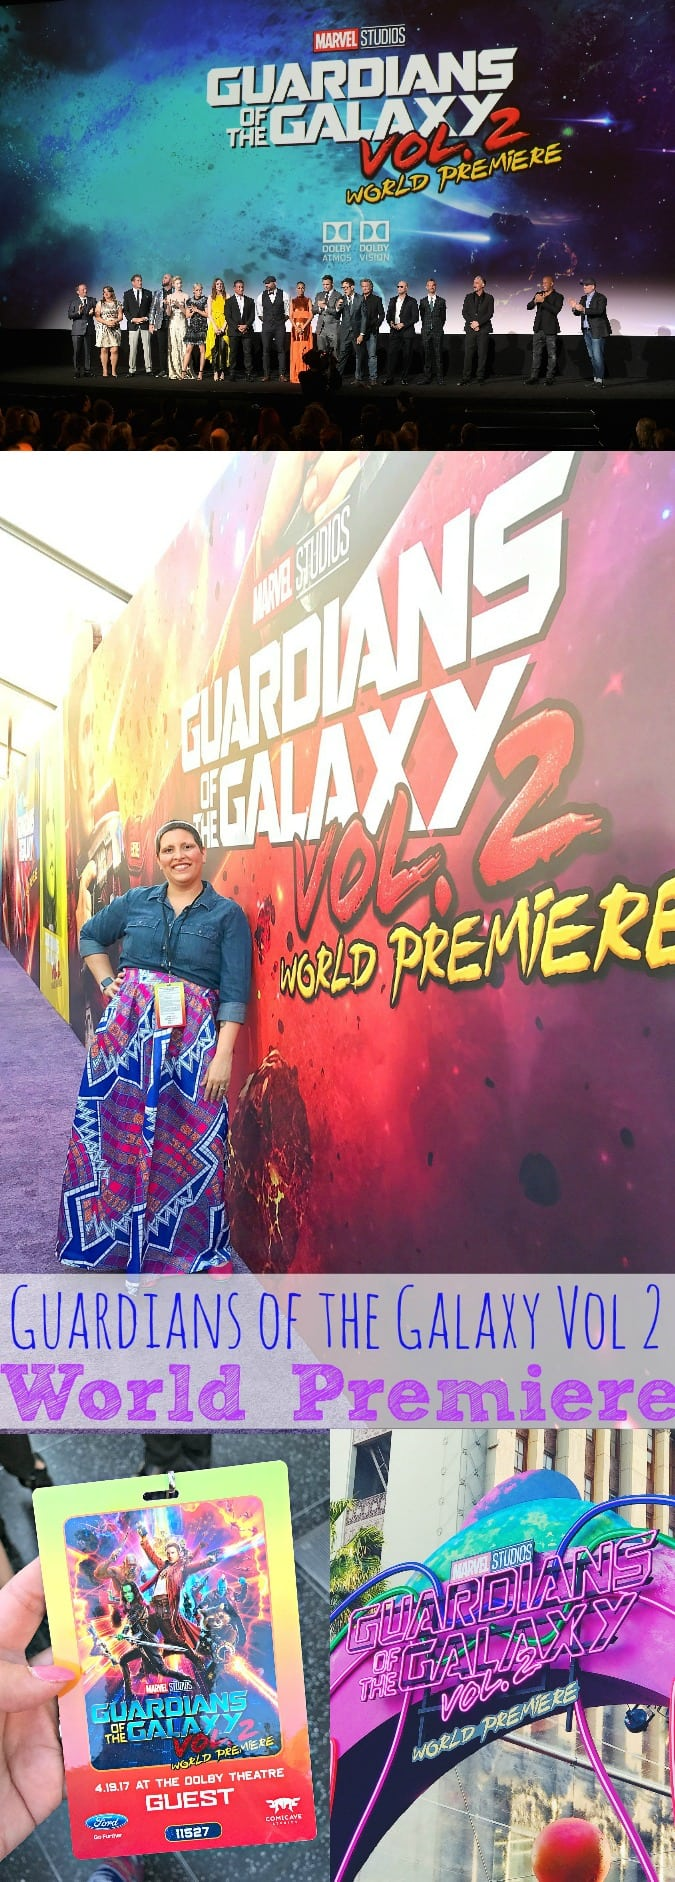 Guardians of the Galaxy Vol 2 Movie Premiere